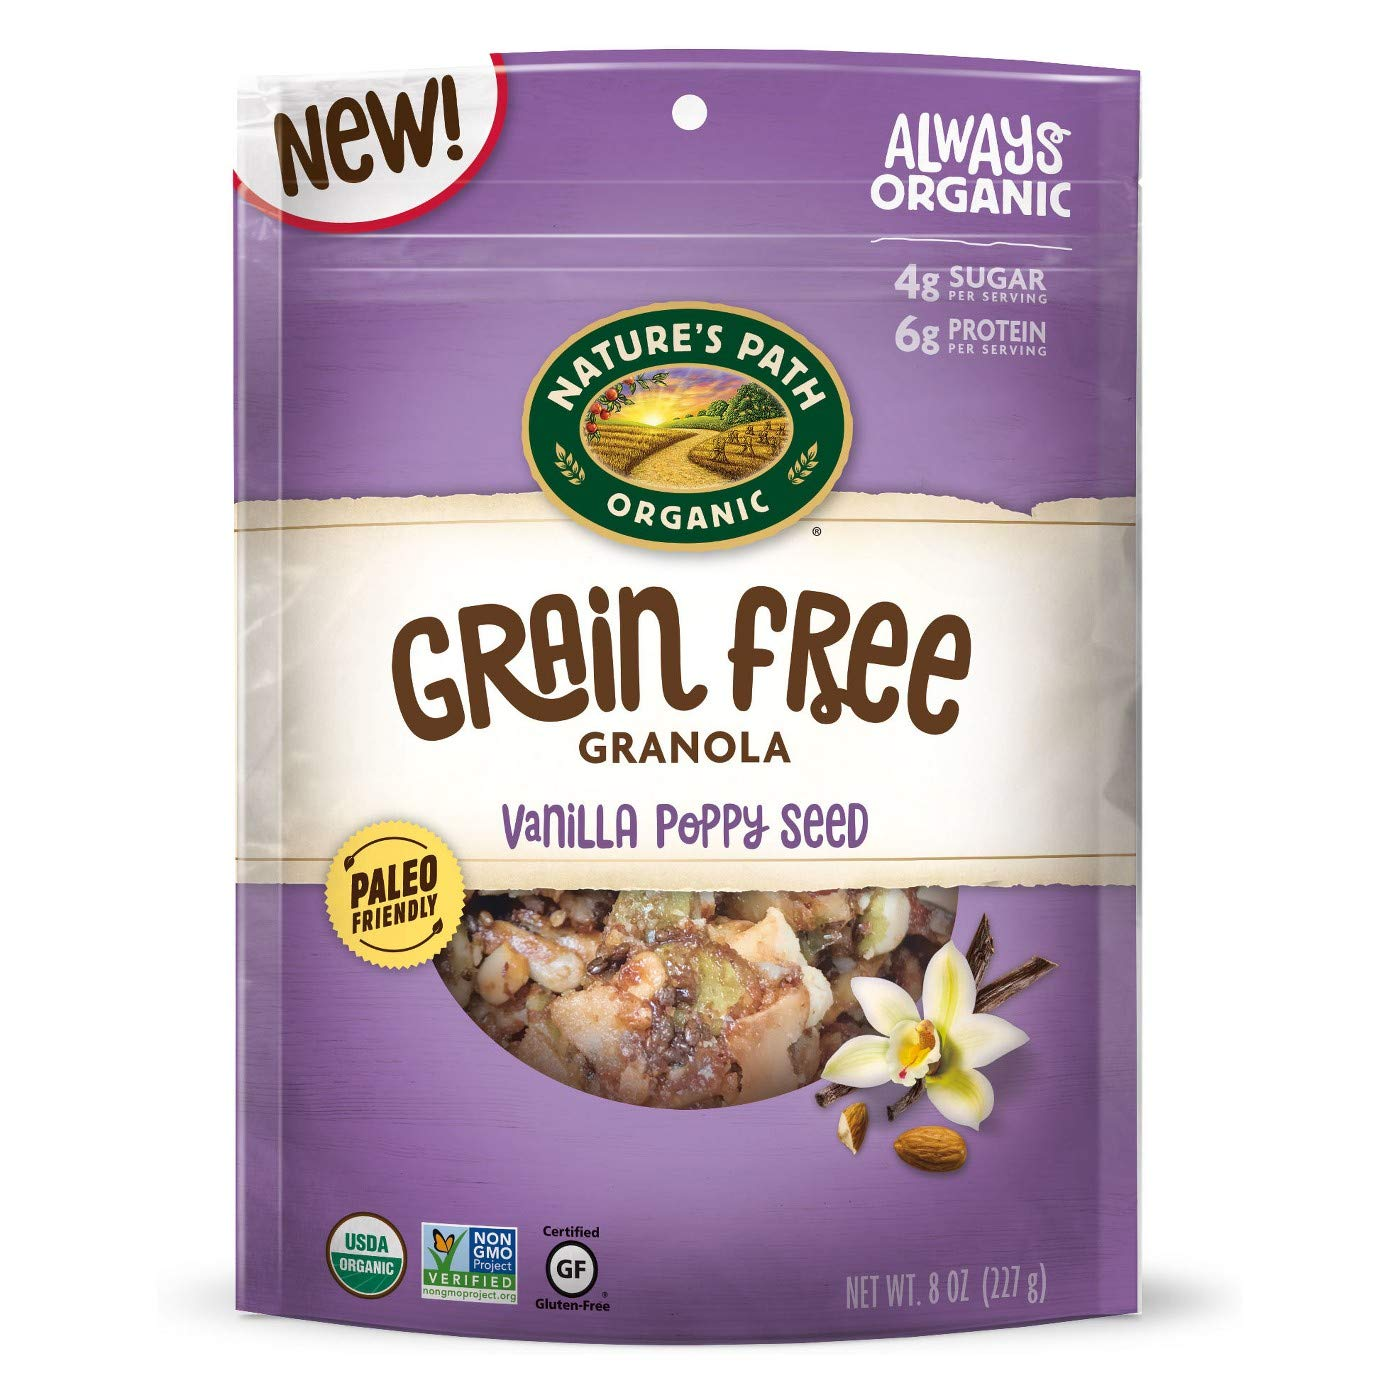 Nature's Path Grain Free Vanilla Poppy Seed Granola 8oz, pack of 1